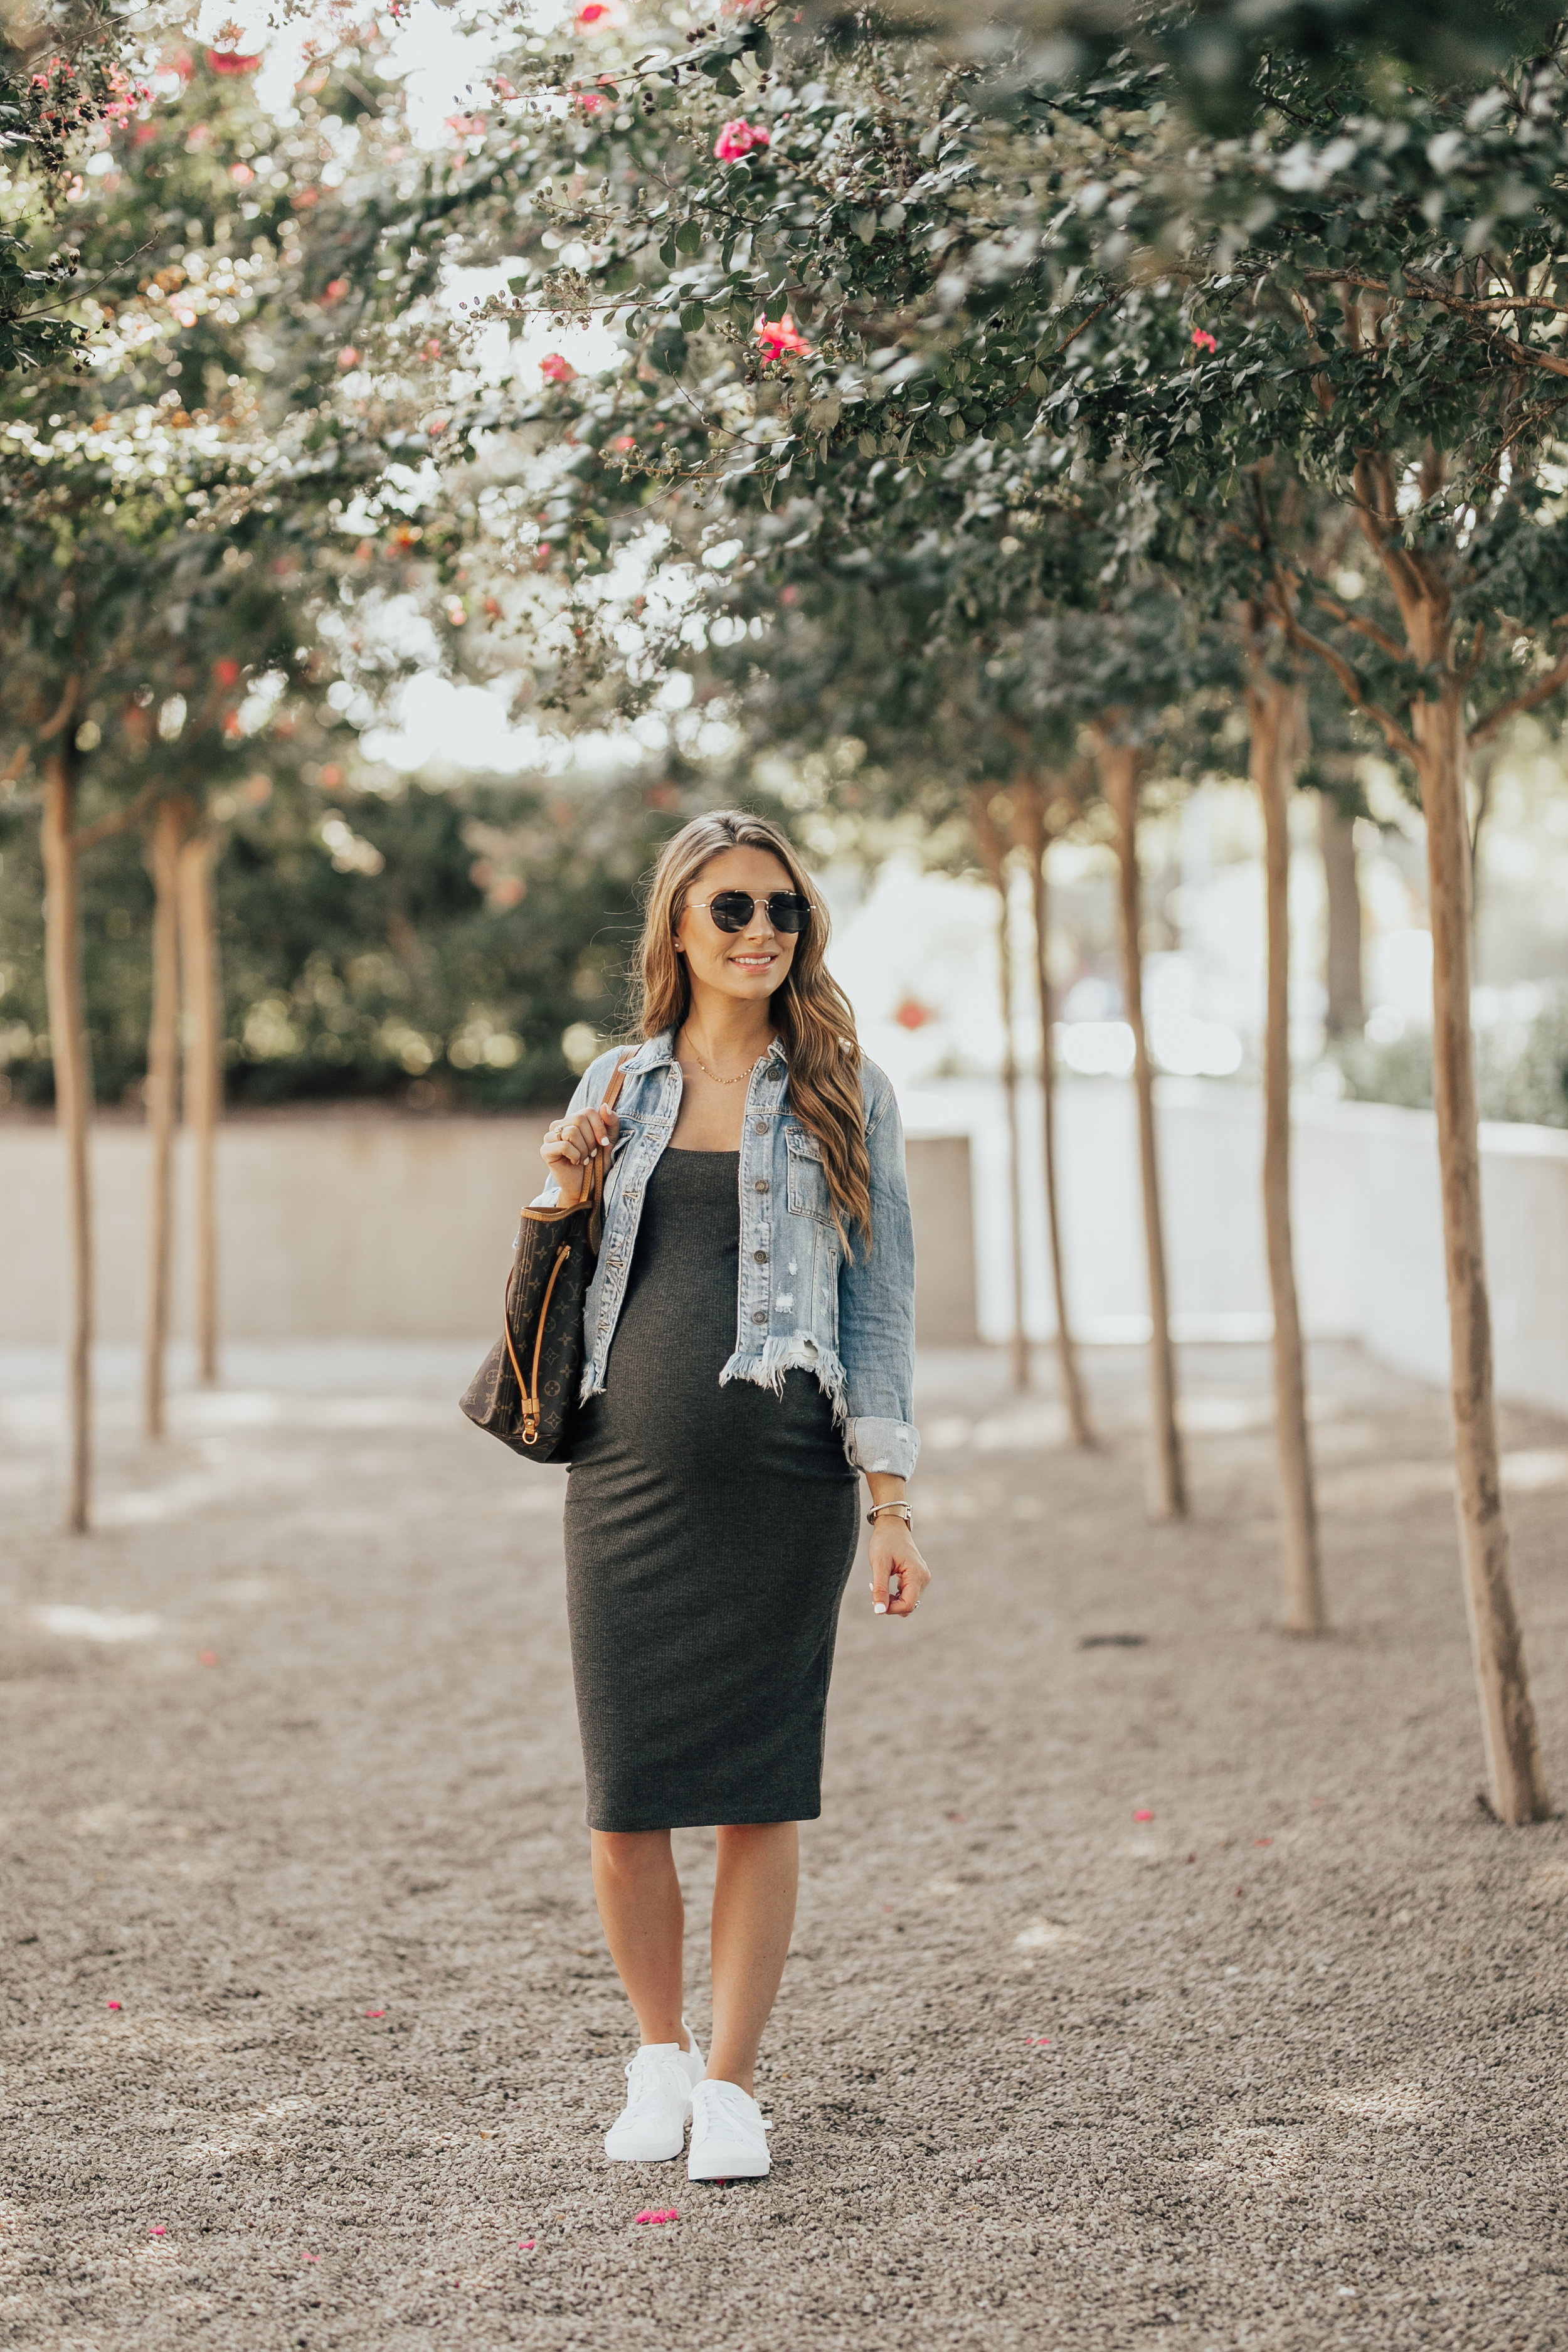 Denim Jacket + Bodycon Dress